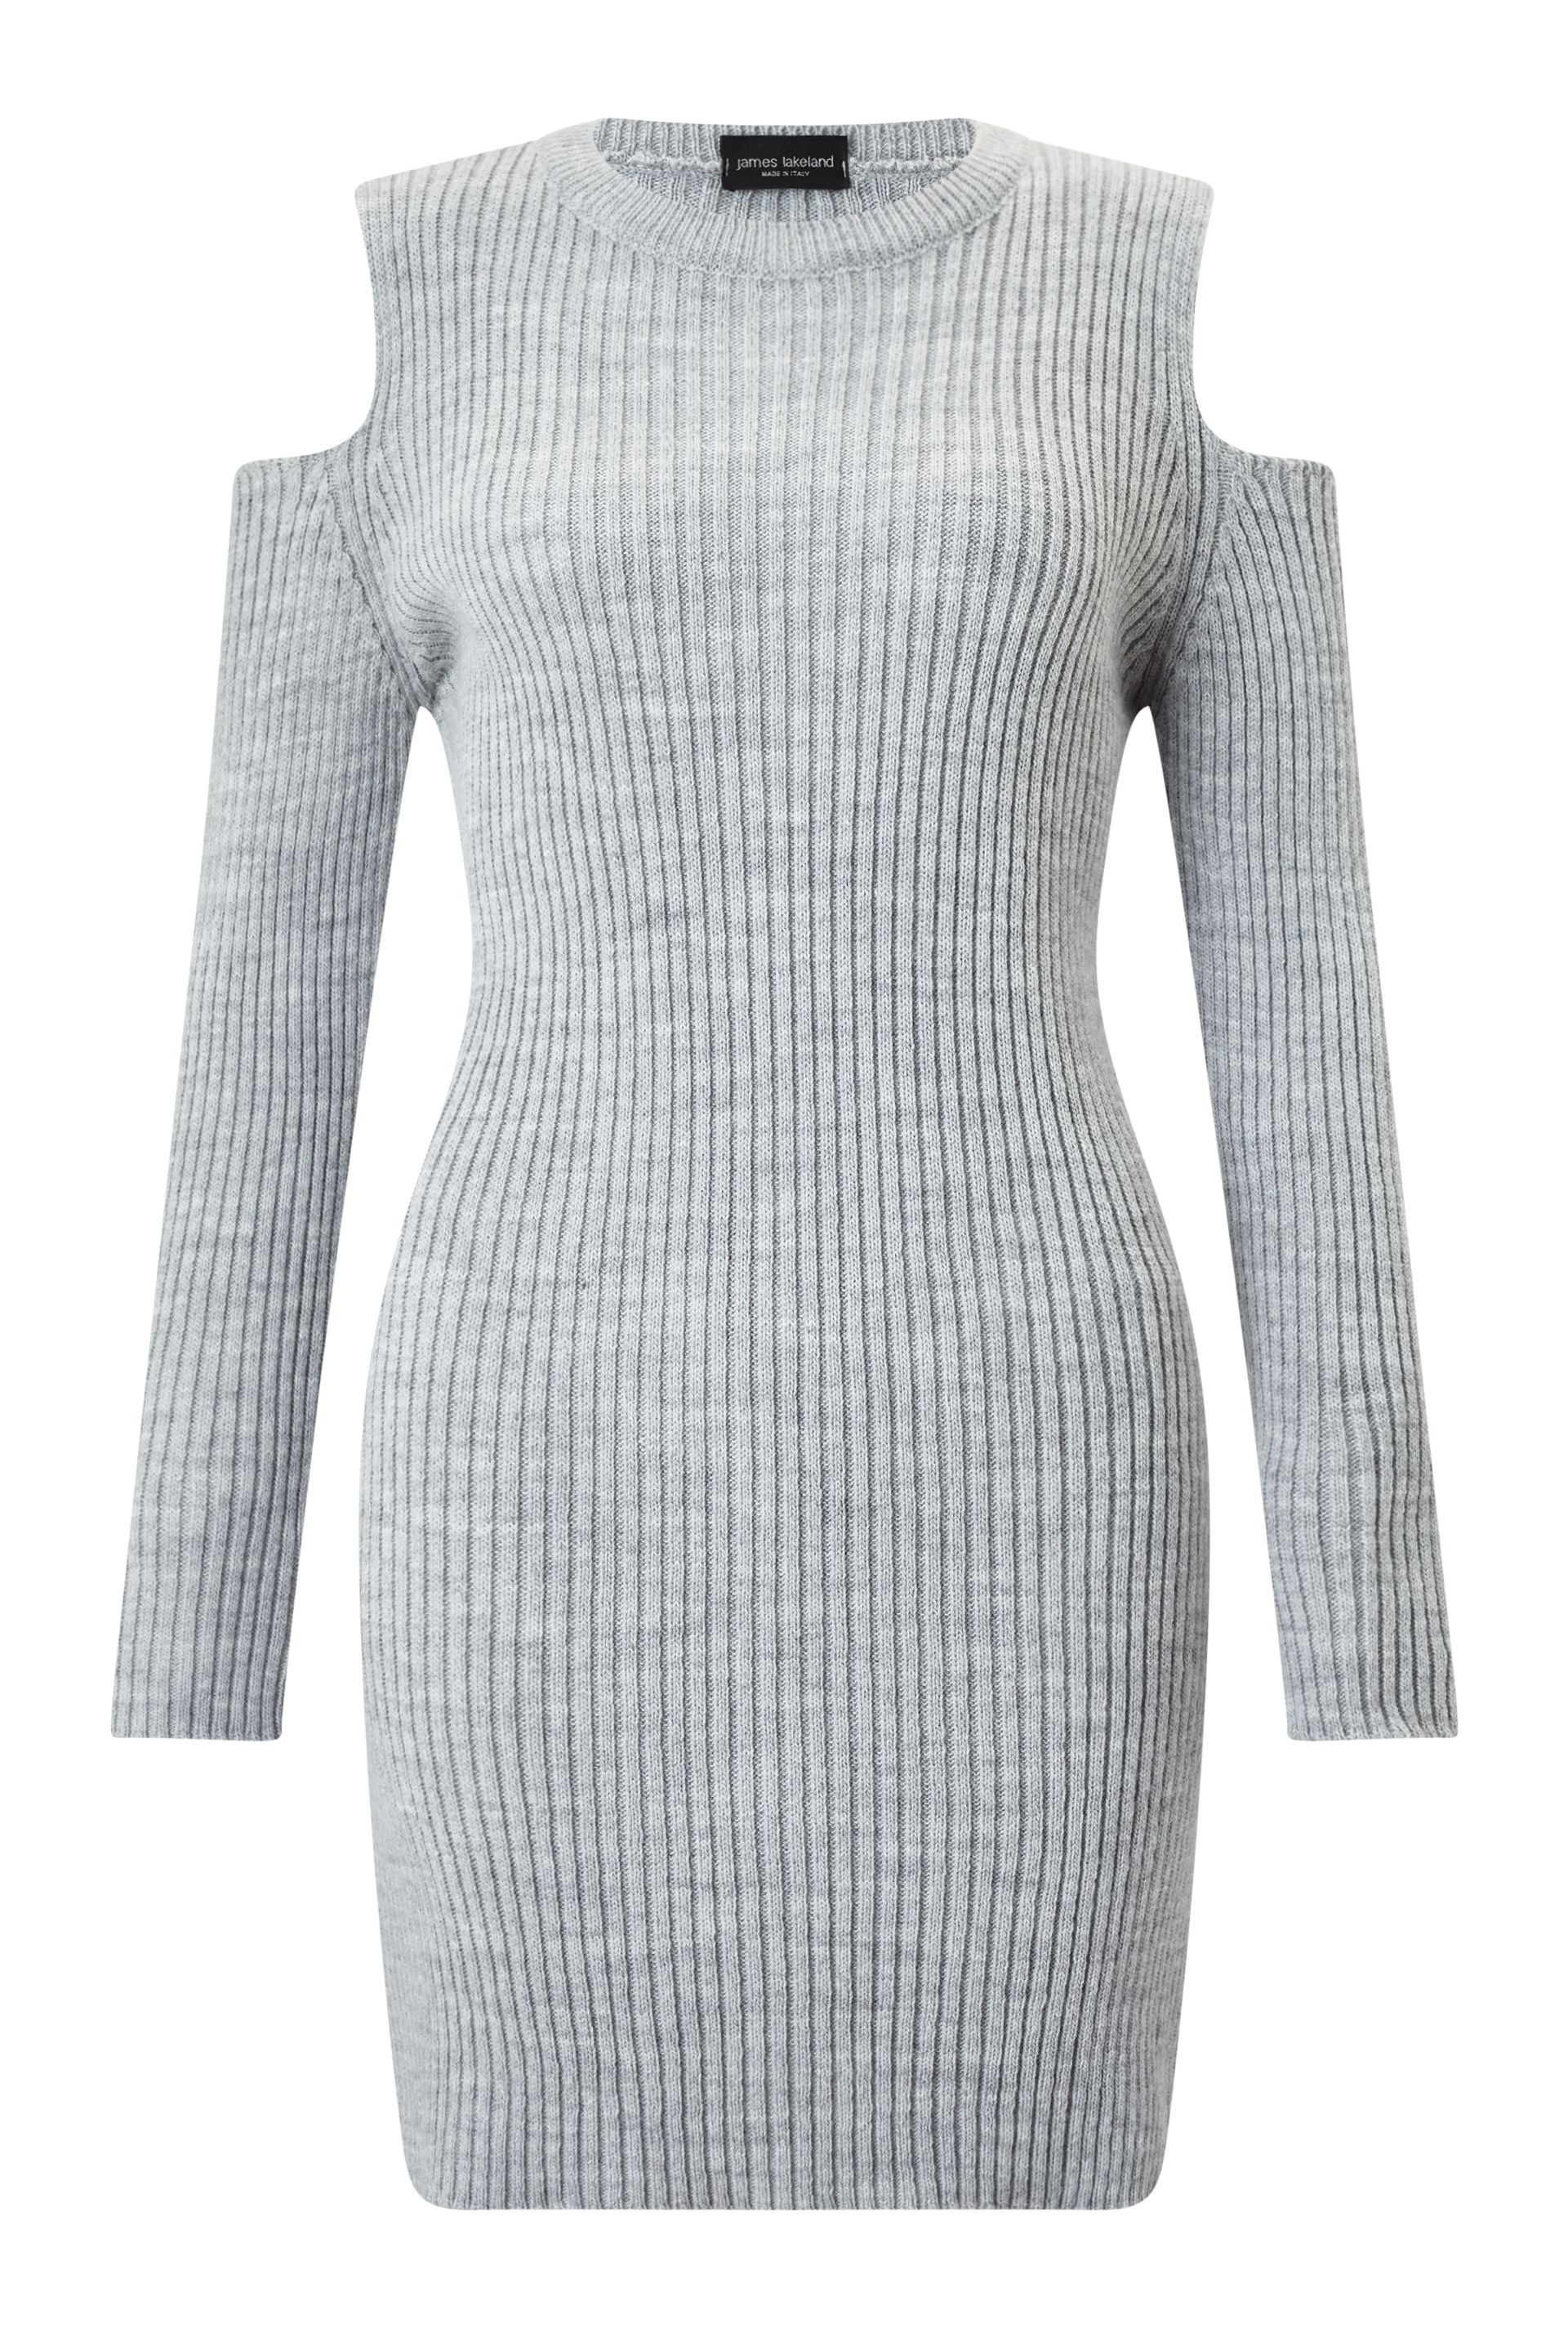 James Lakeland Cold Shoulder Knit Dress, Grey